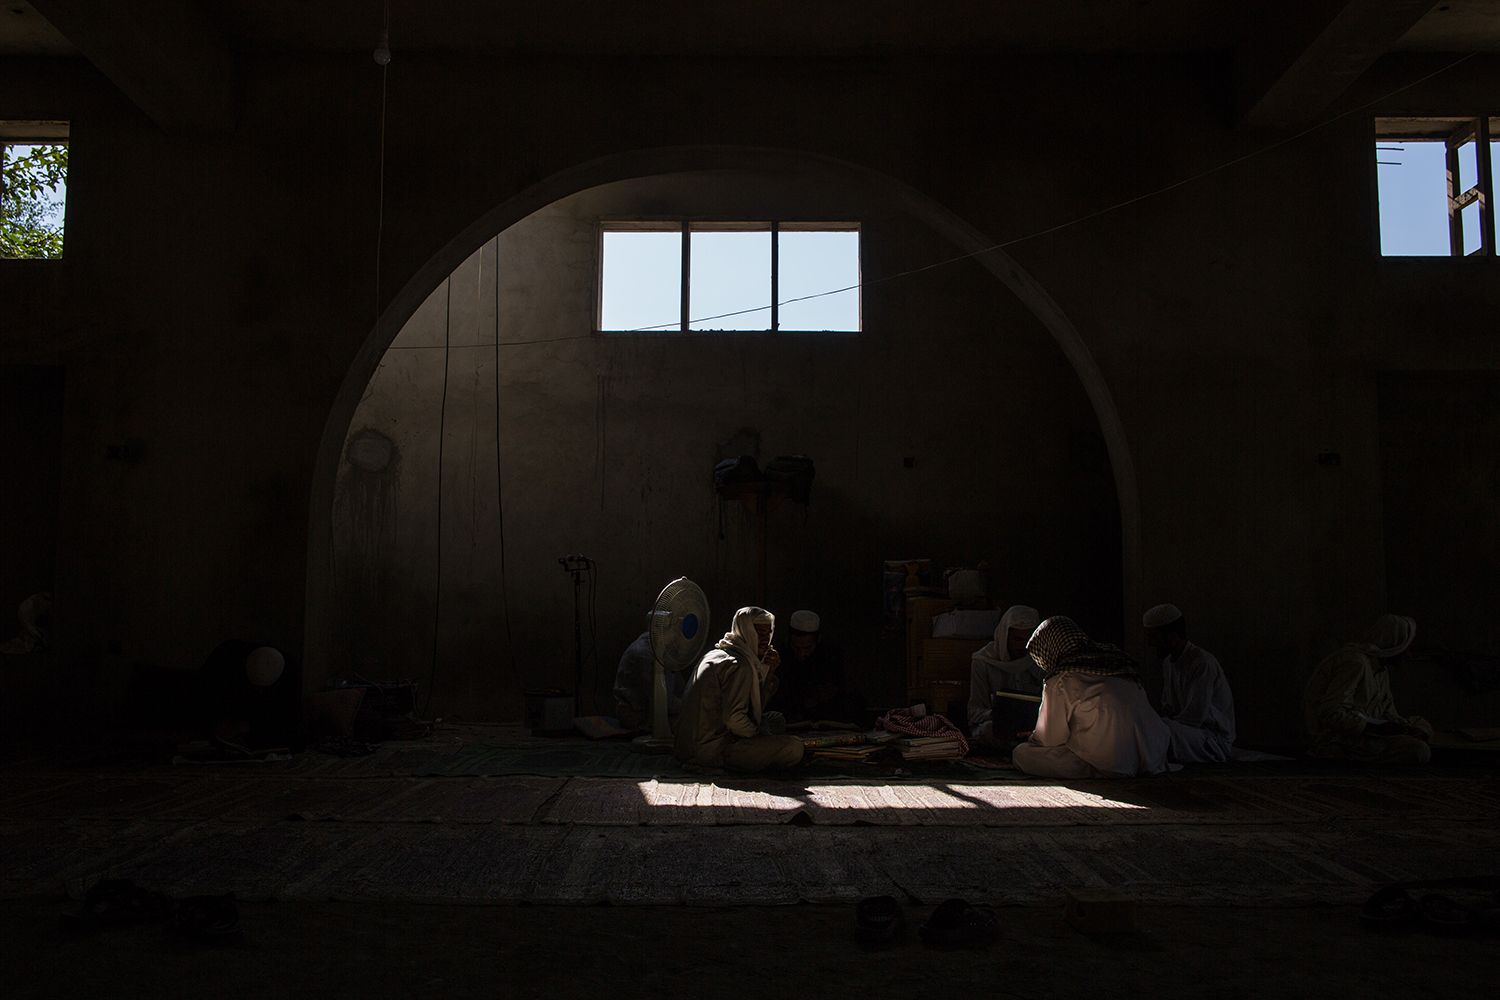 Students study at the mosque in Charakai village in Afghanistan's eastern Kunar Province on Sept. 16, 2019.